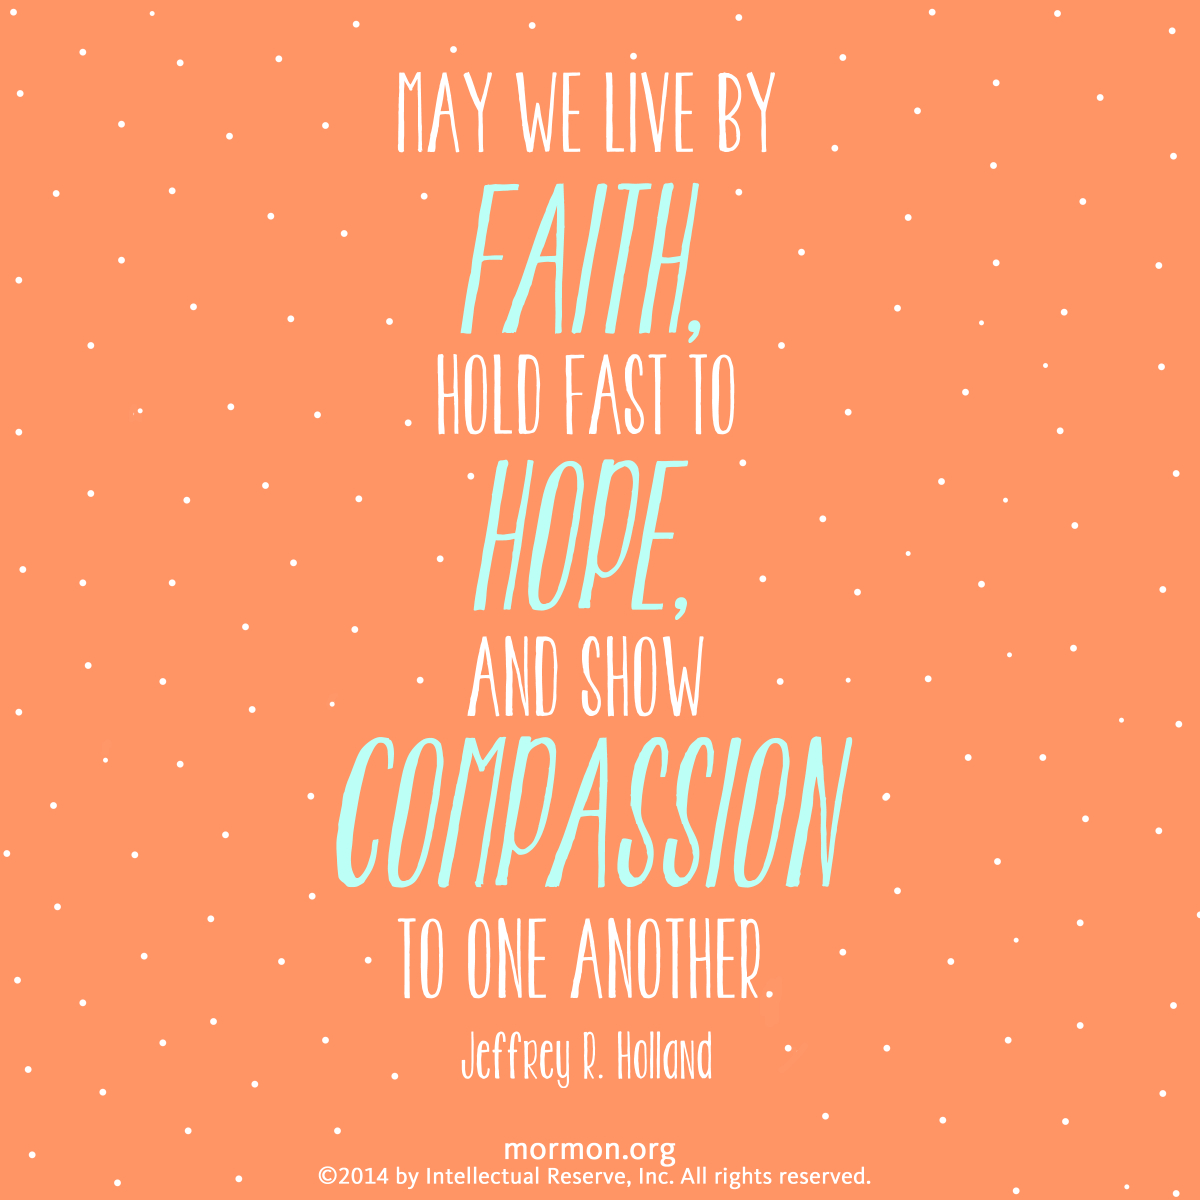 Inspirational Meme About Compassion: Show Compassion To One Another